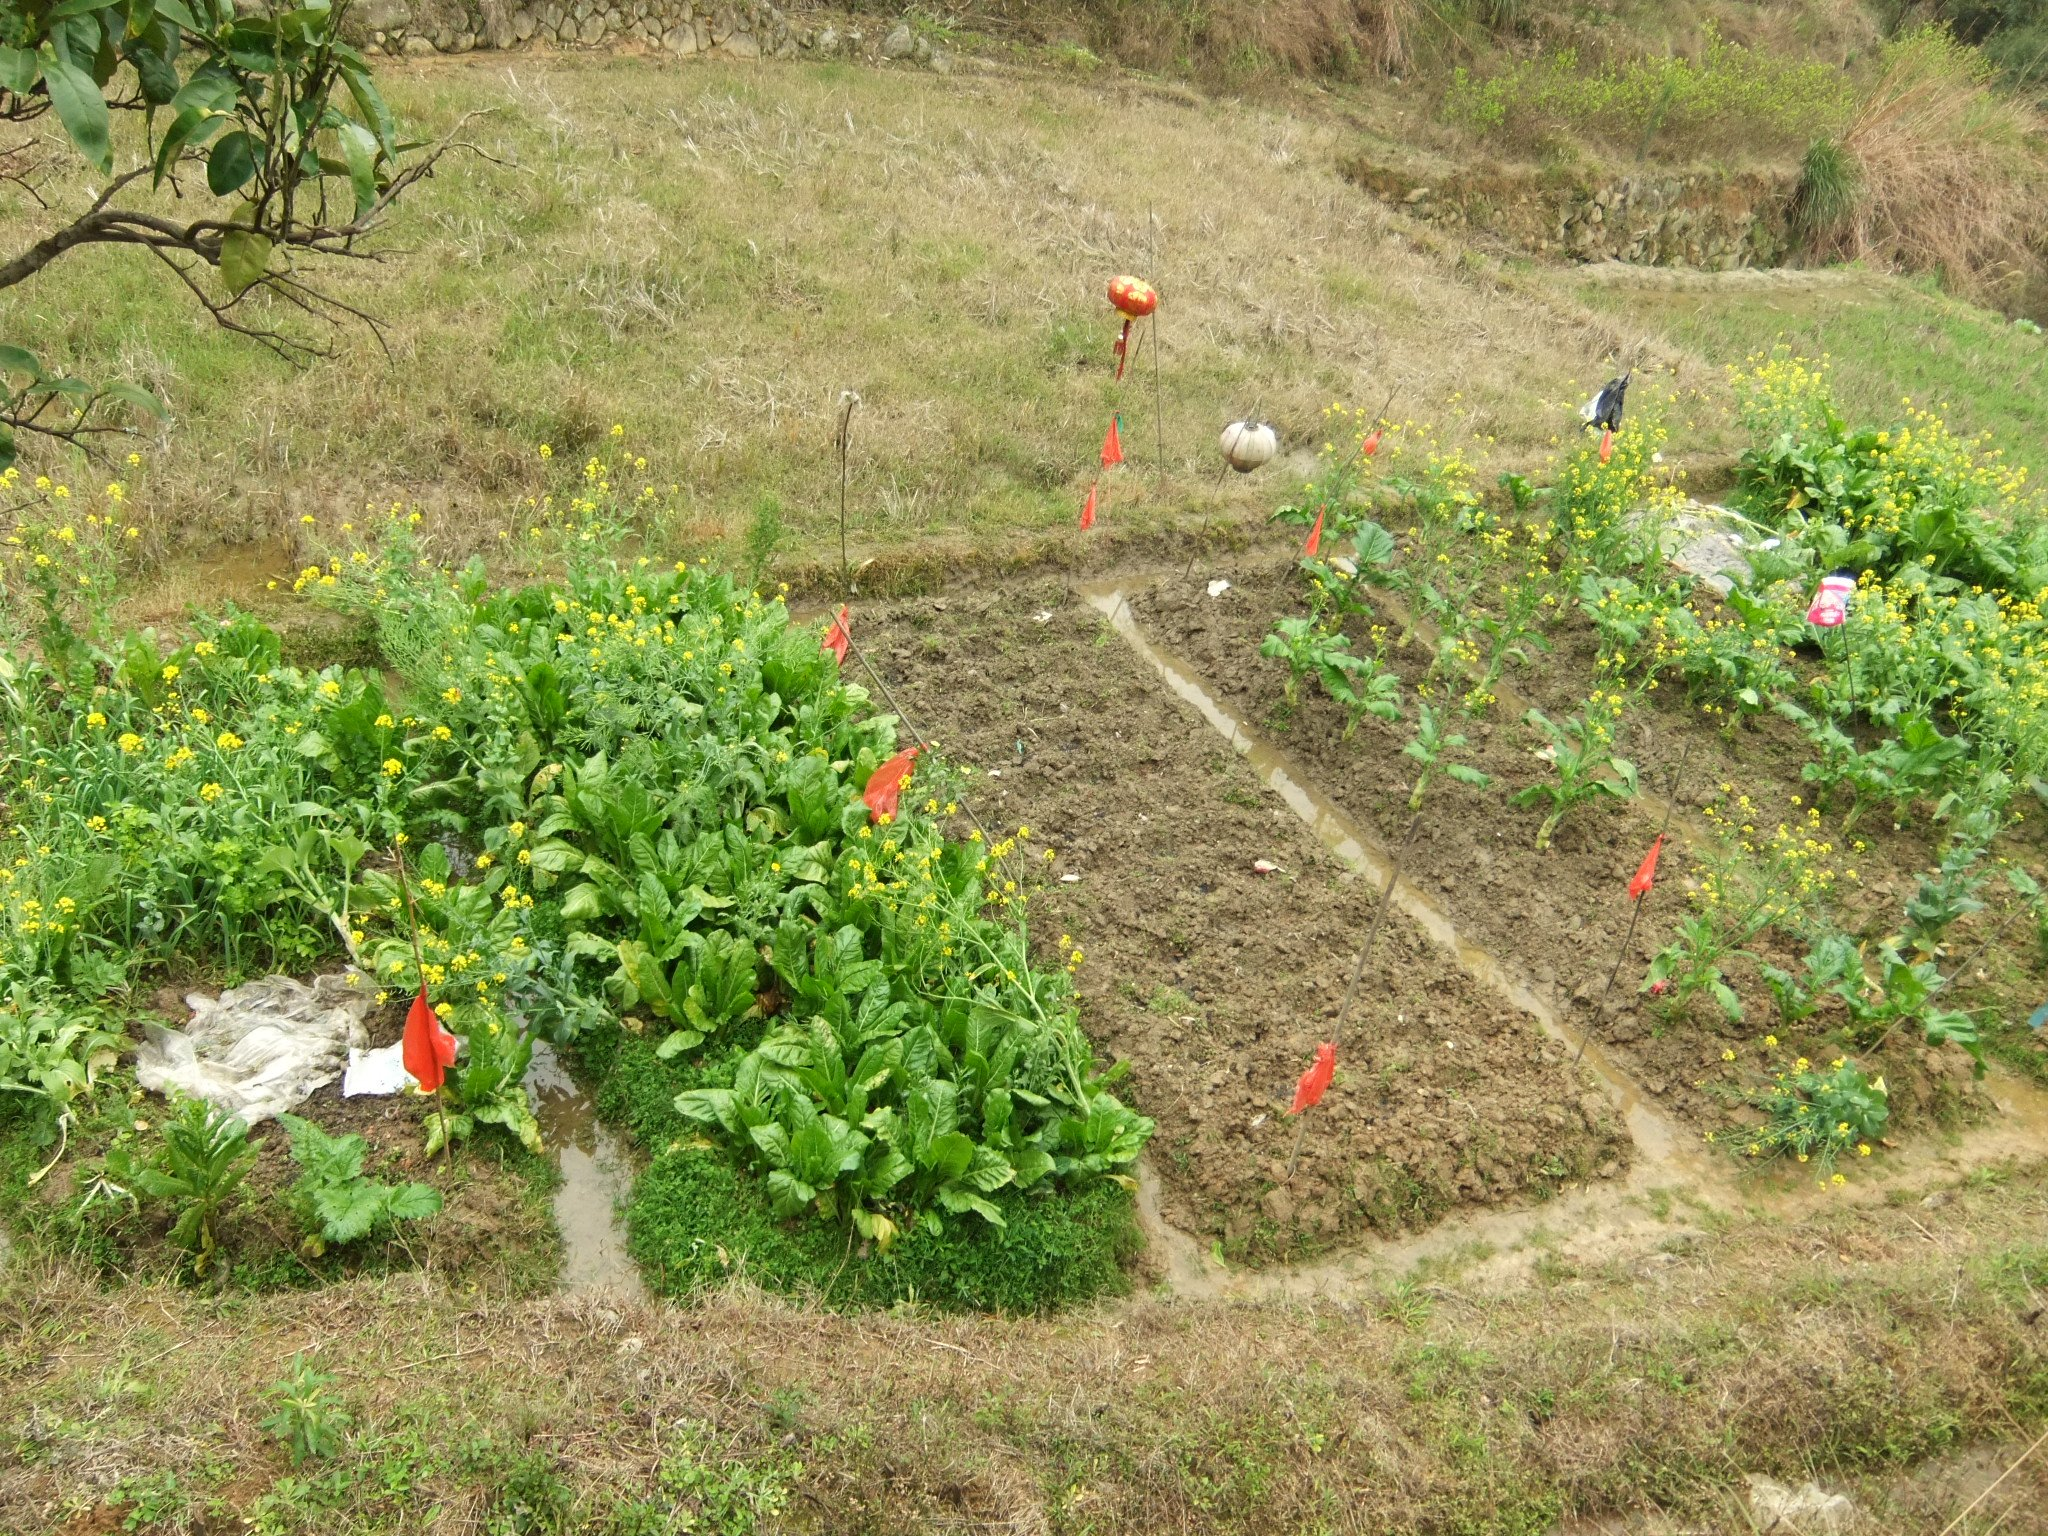 home garden with vegetables